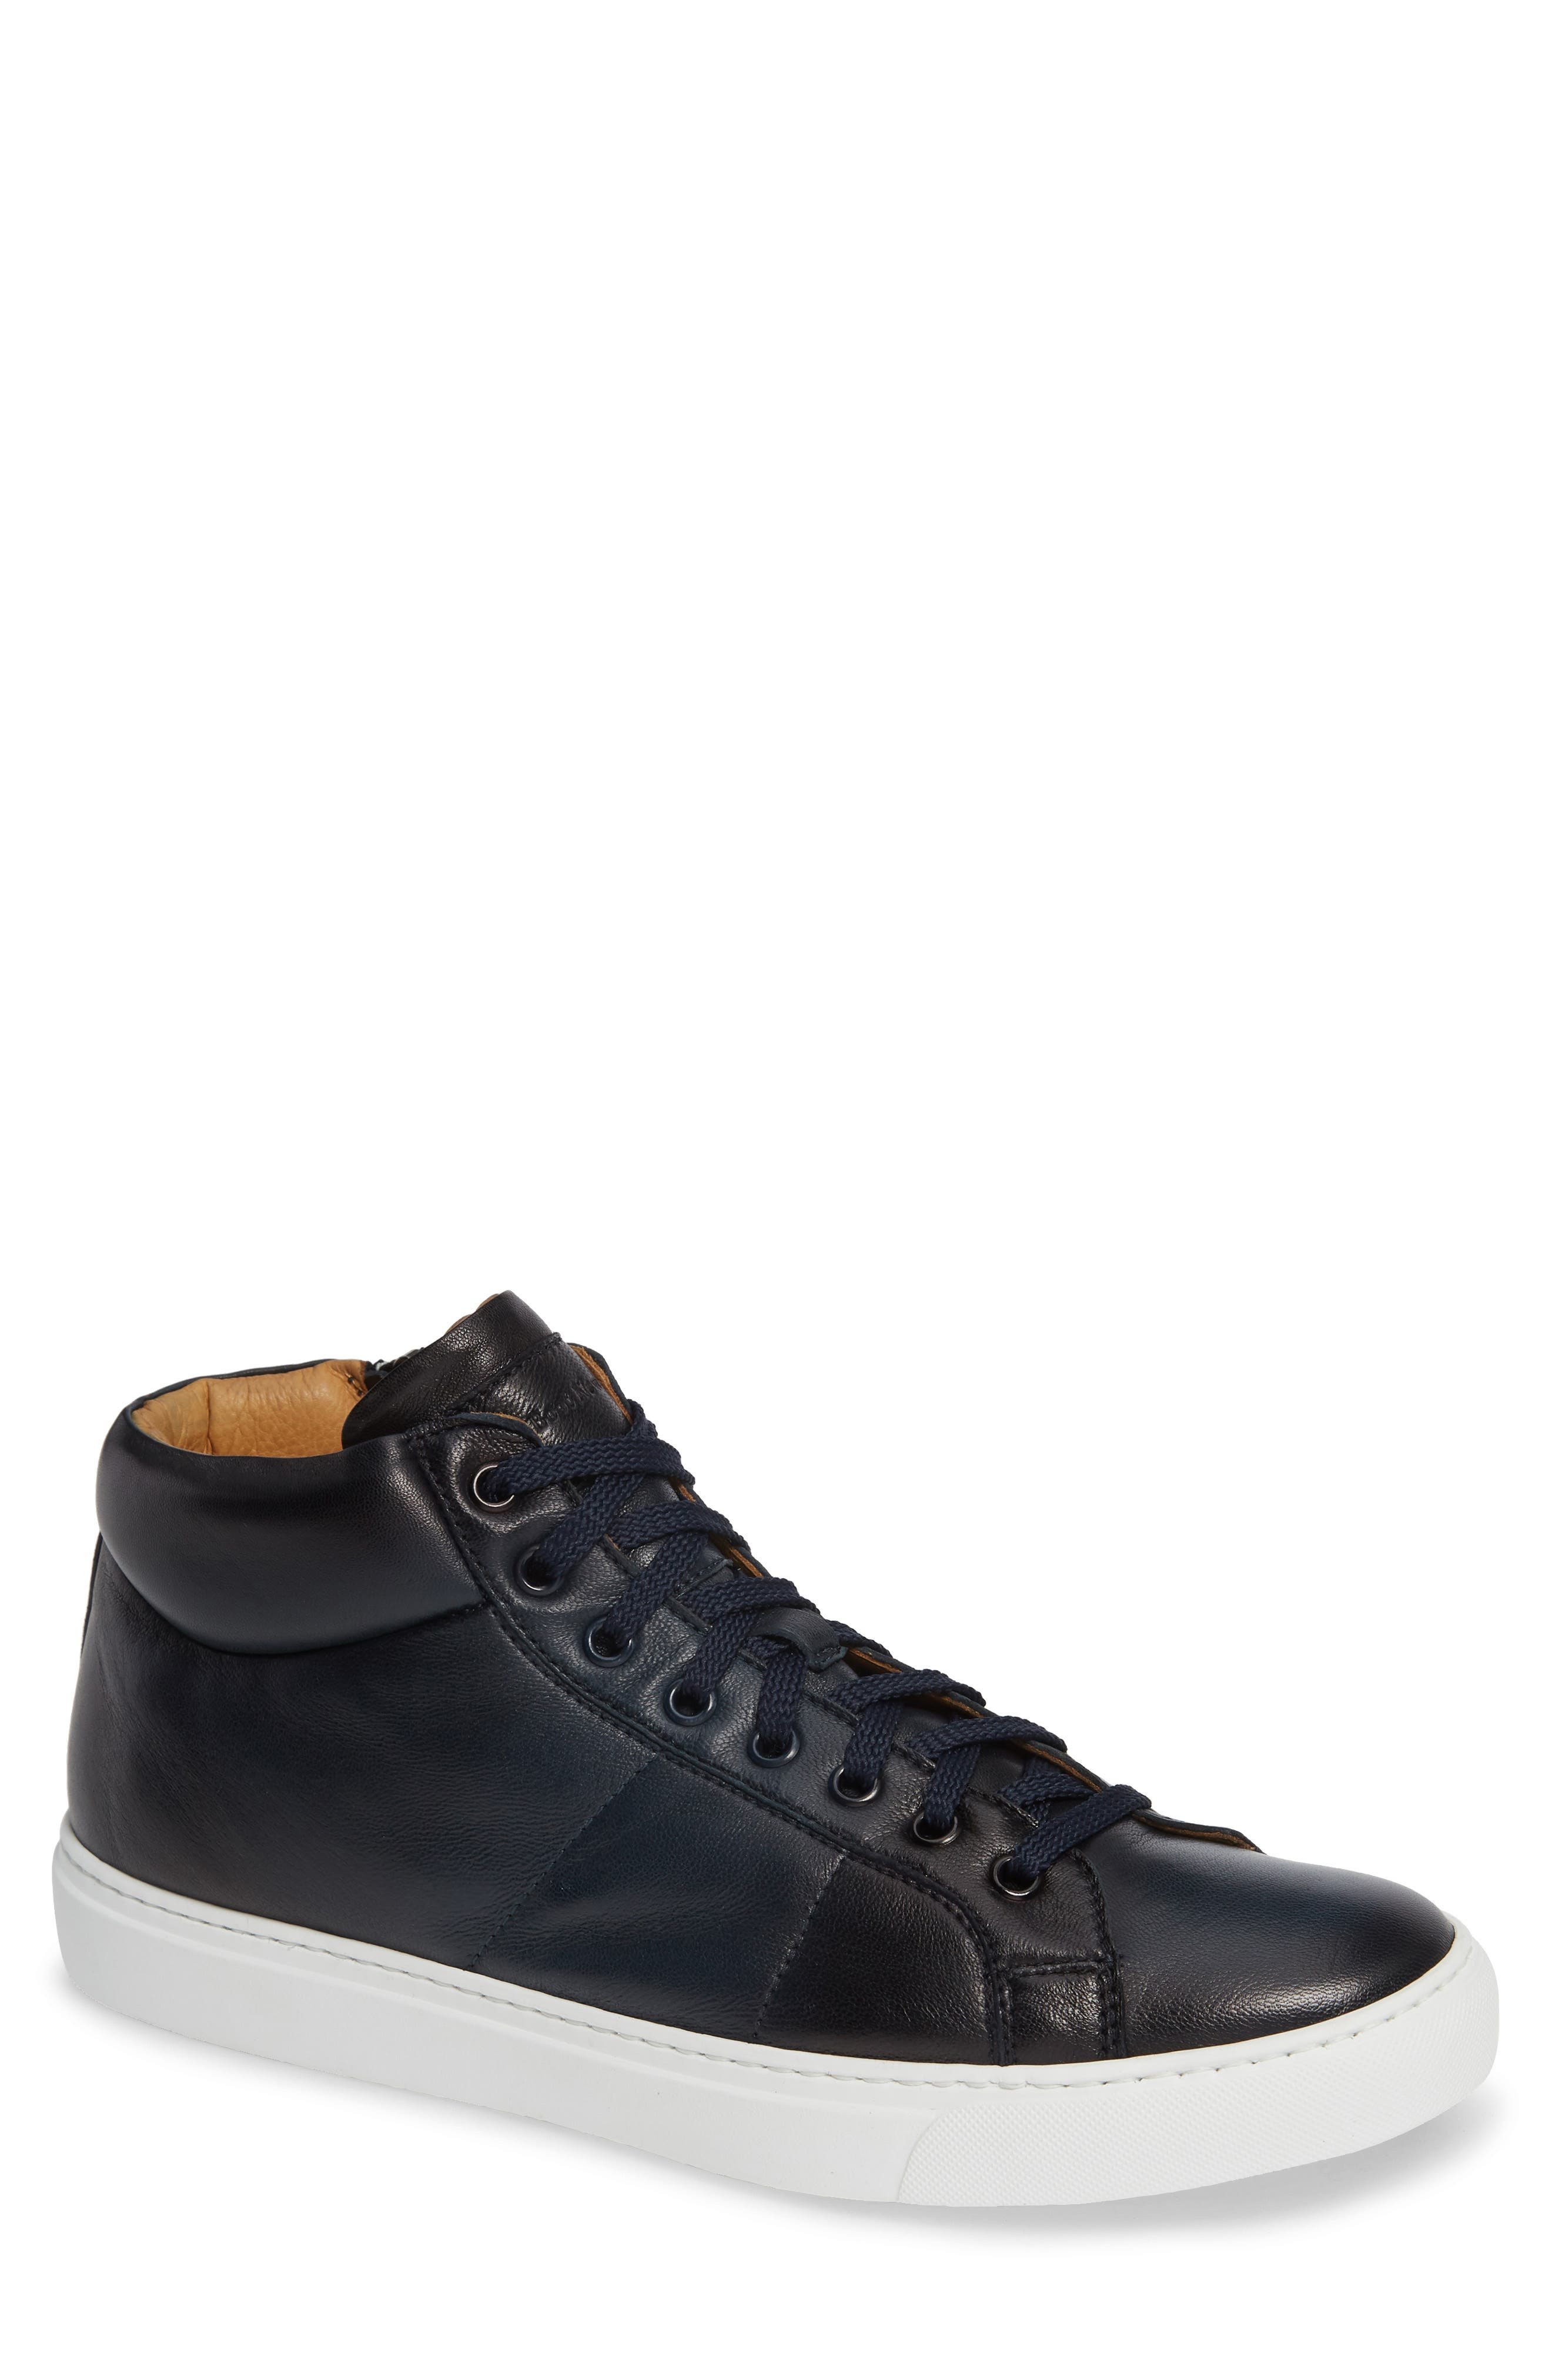 Rayburn Mid Top Sneaker,                             Main thumbnail 1, color,                             NAVY LEATHER